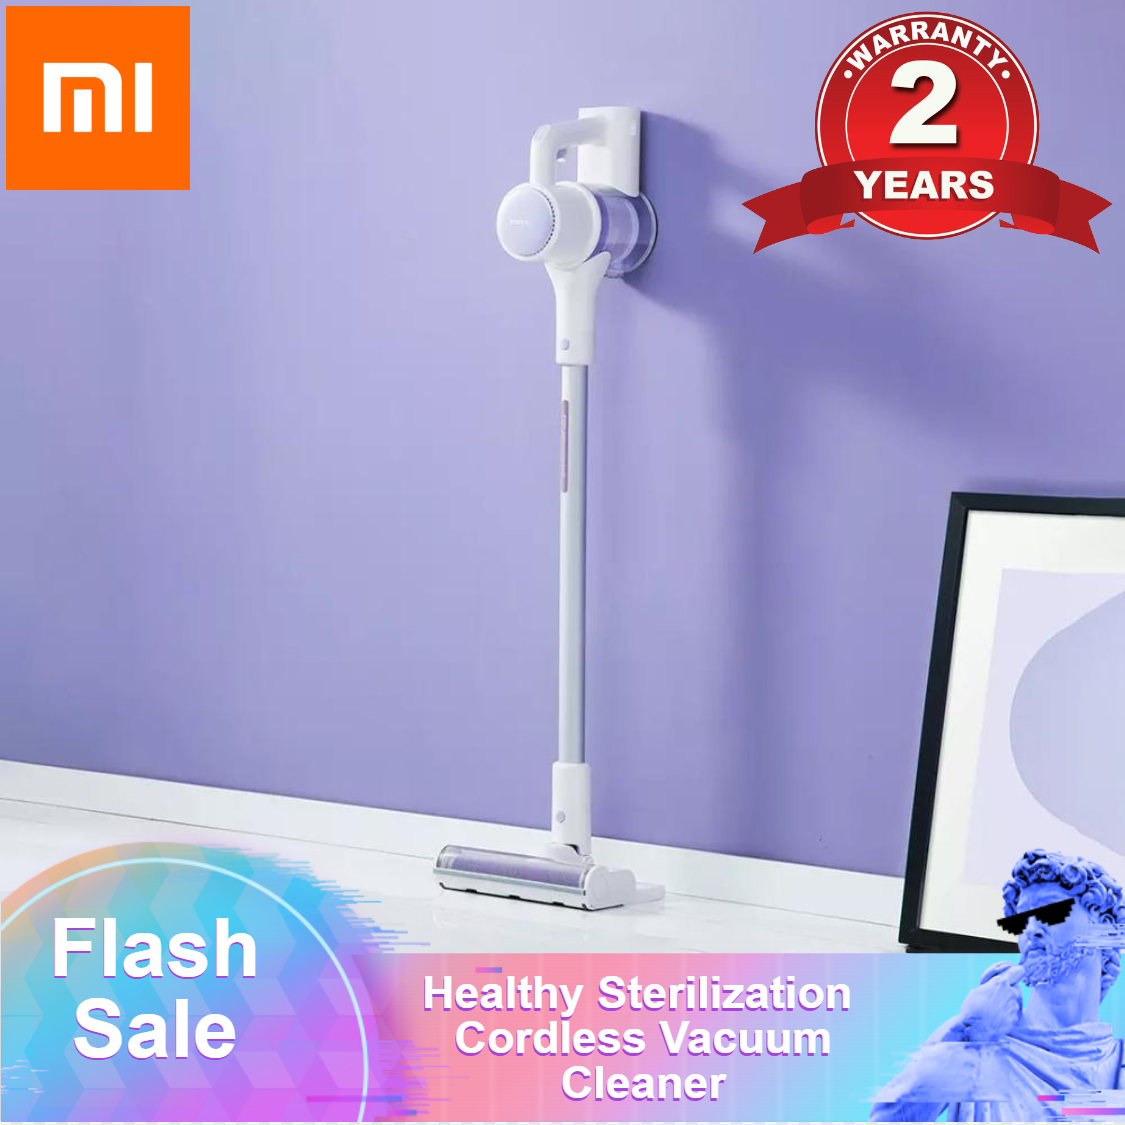 Xiaomi Roidmi ZERO Vacuum Cleaners Healthy Sterilization Robot Cordless Vertical Vacuum Cleaner Wireless For Home Appliances